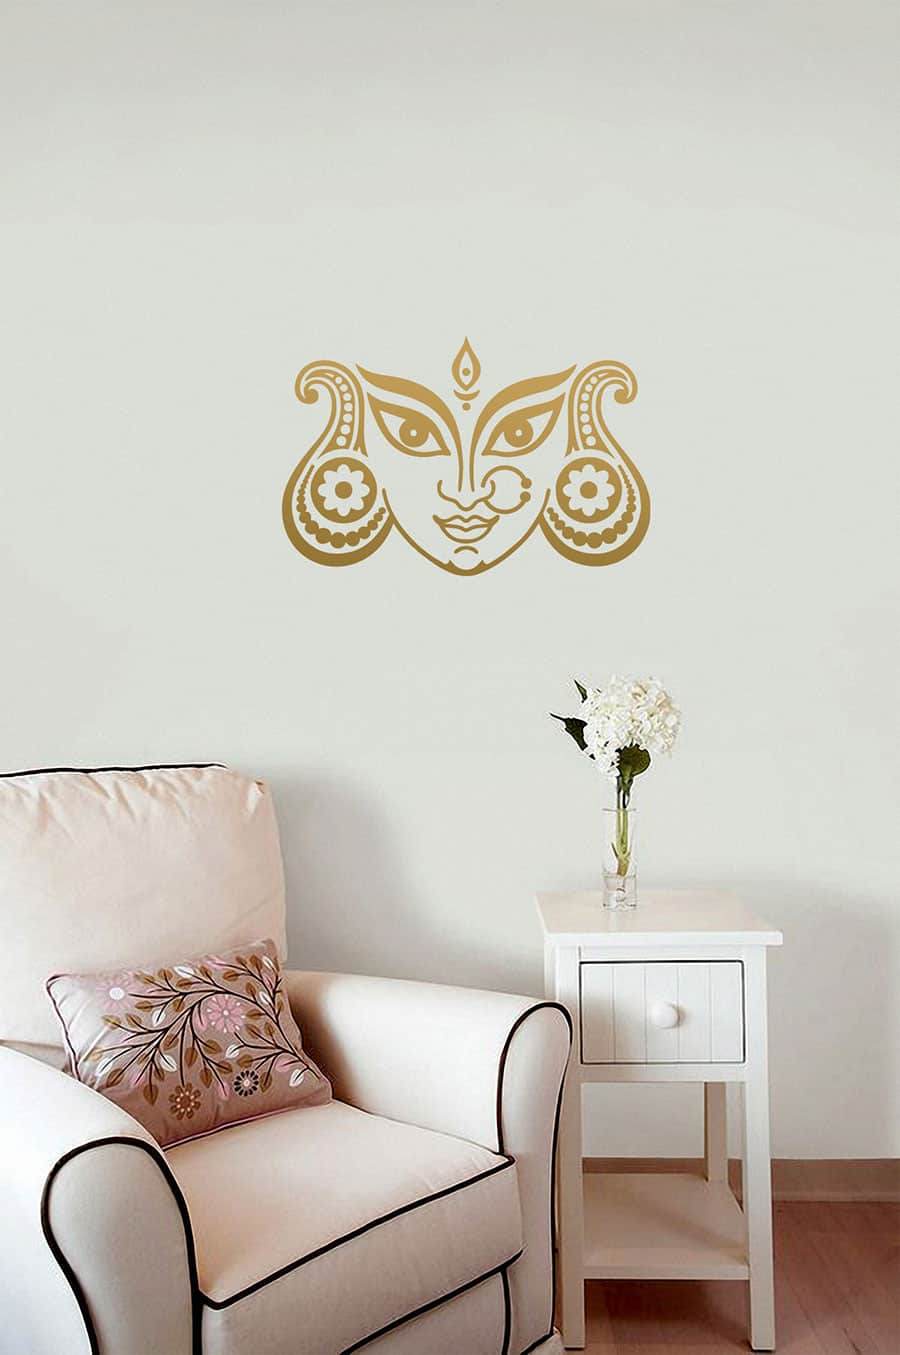 WDC01033 Durga Devi Face Gold M 4 room sticker